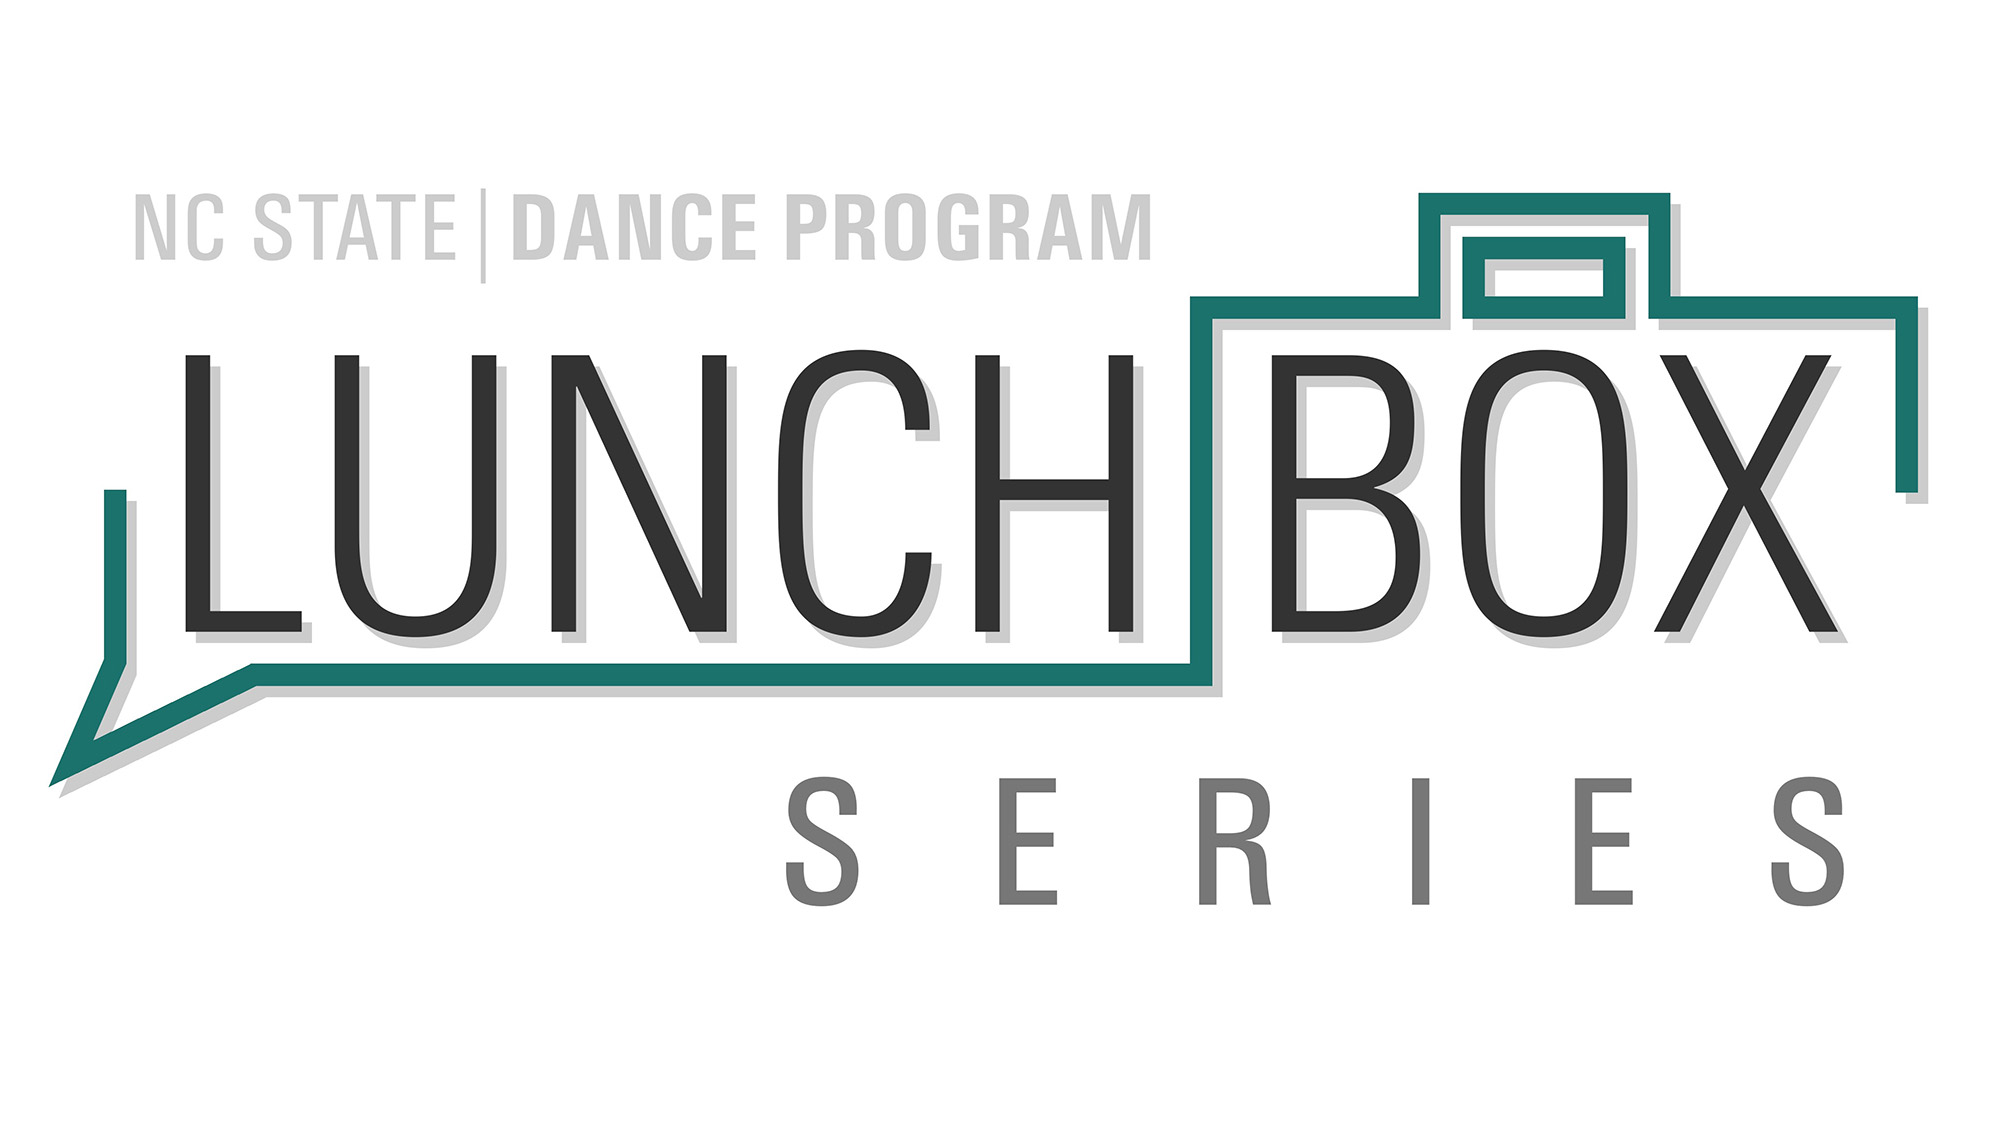 NC State Dance Program Lunchbox Series